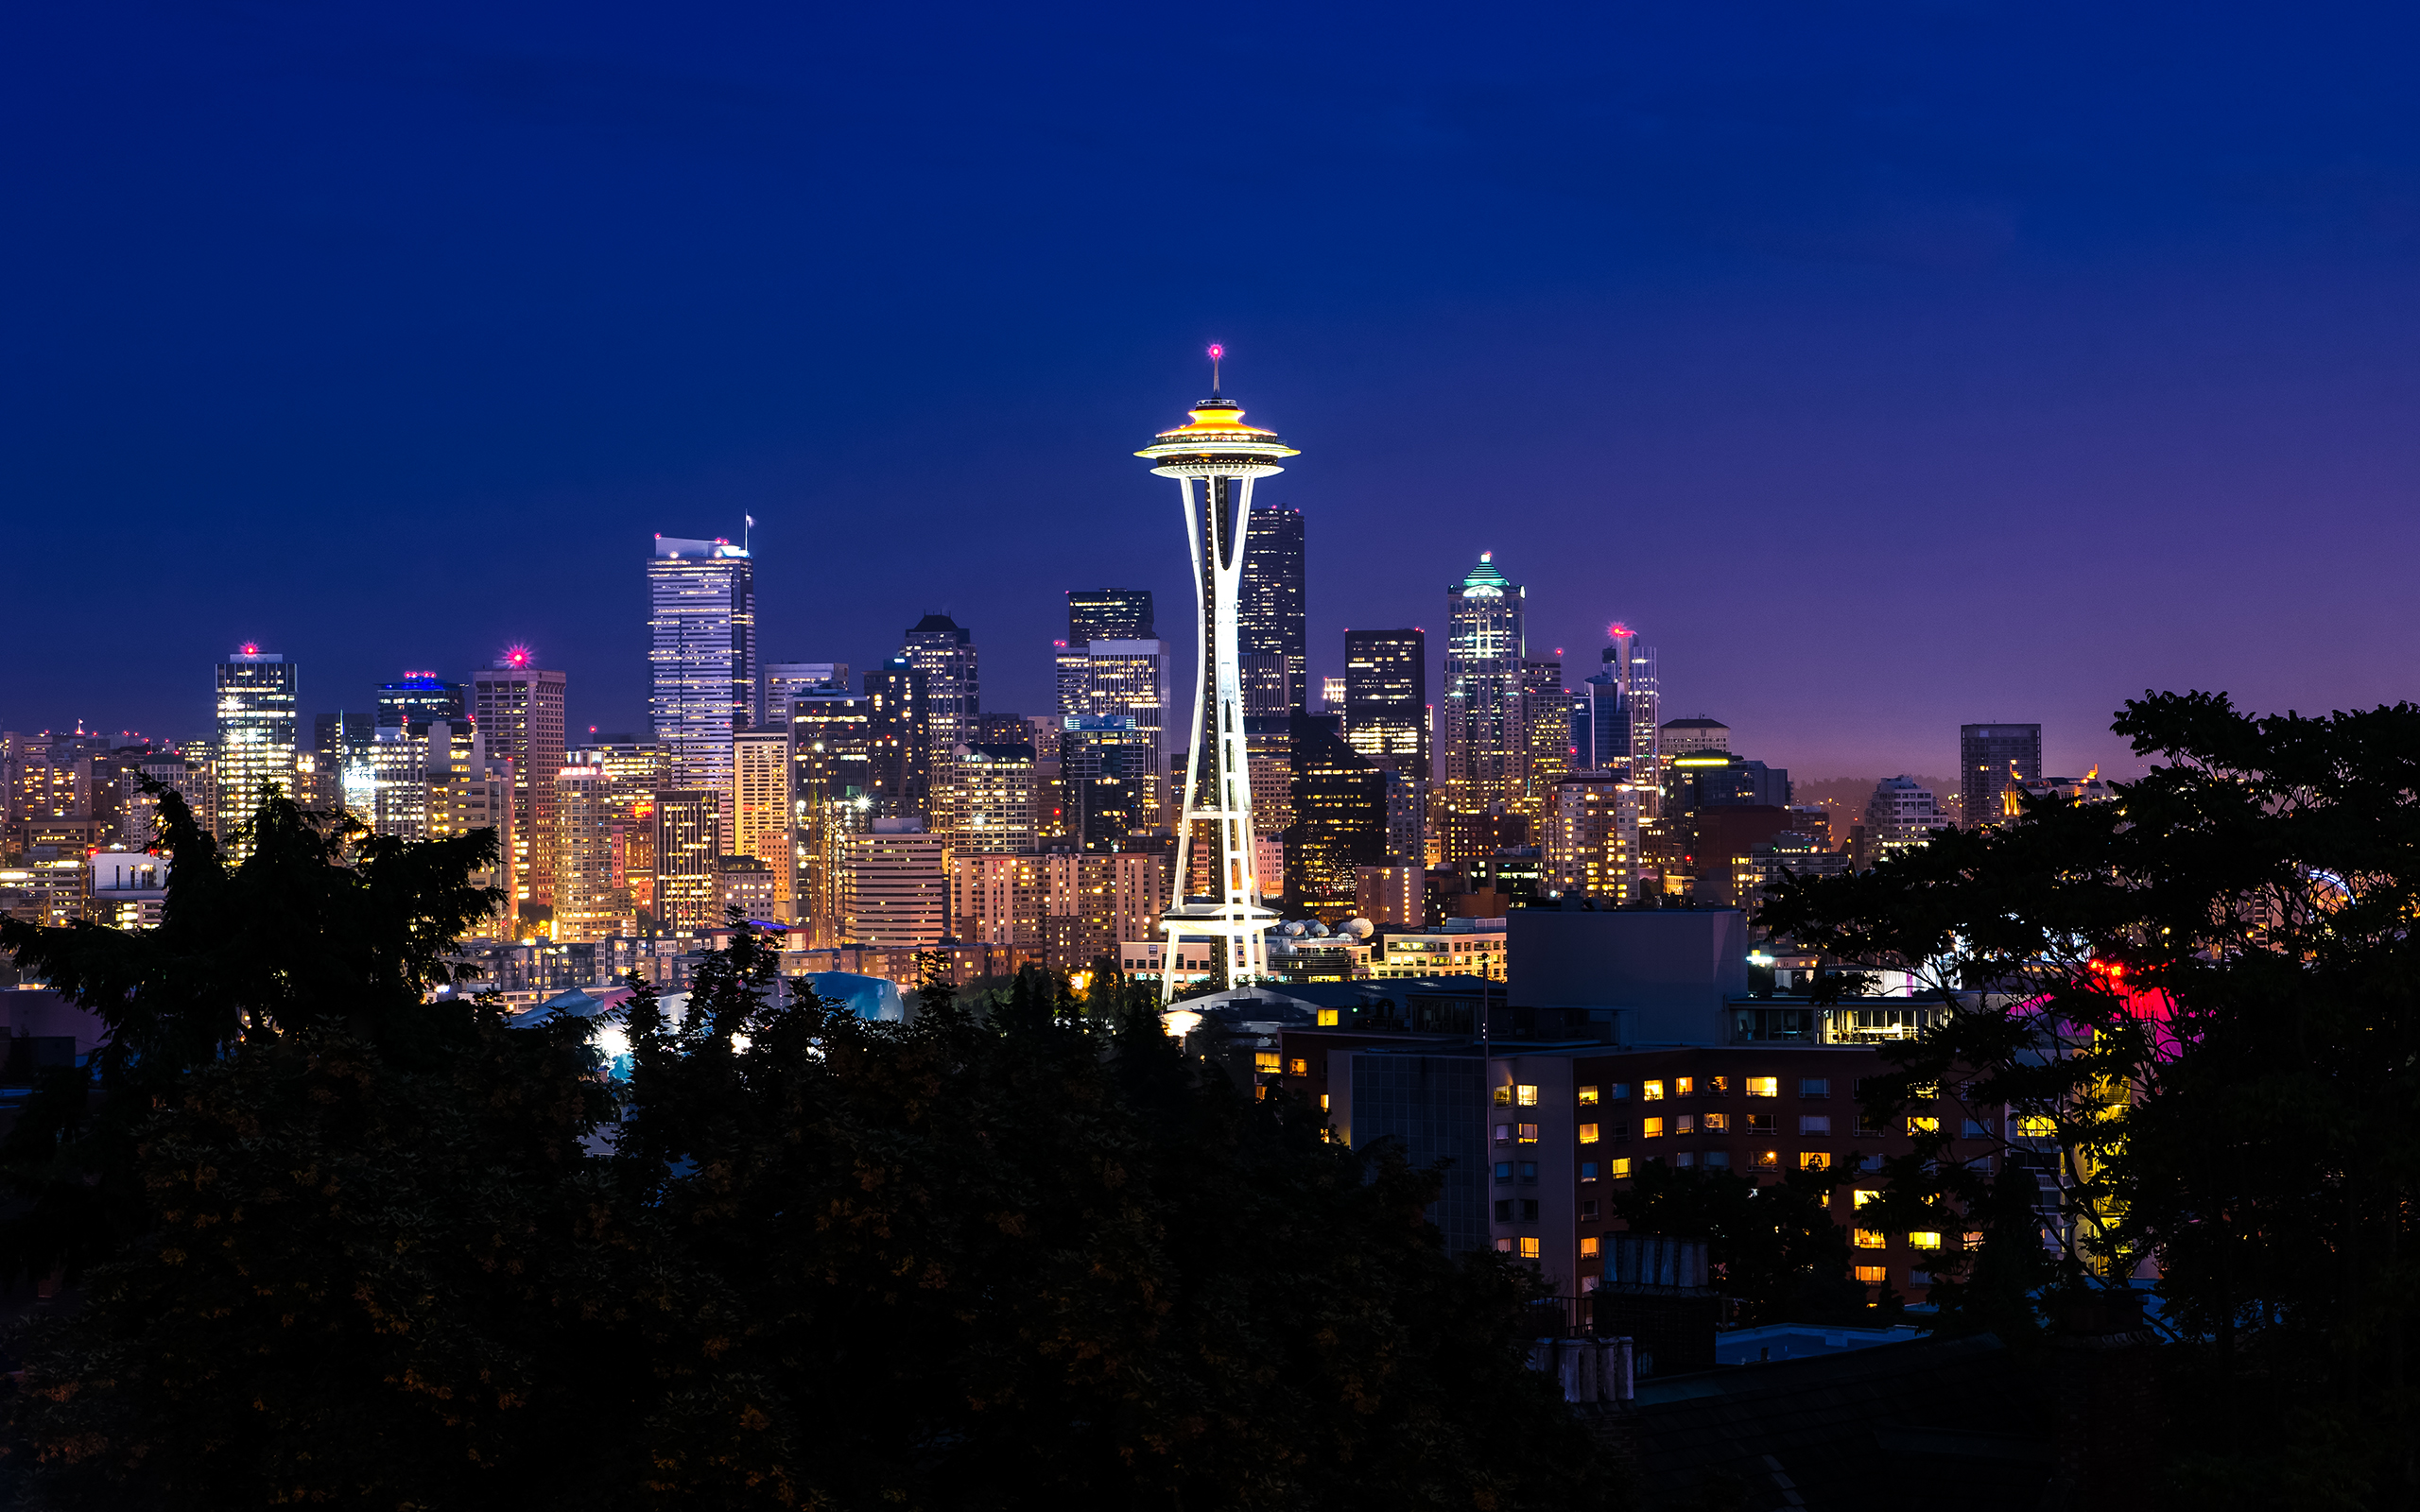 Seattle Skyline Wallpaper 20859 1920x1200 px